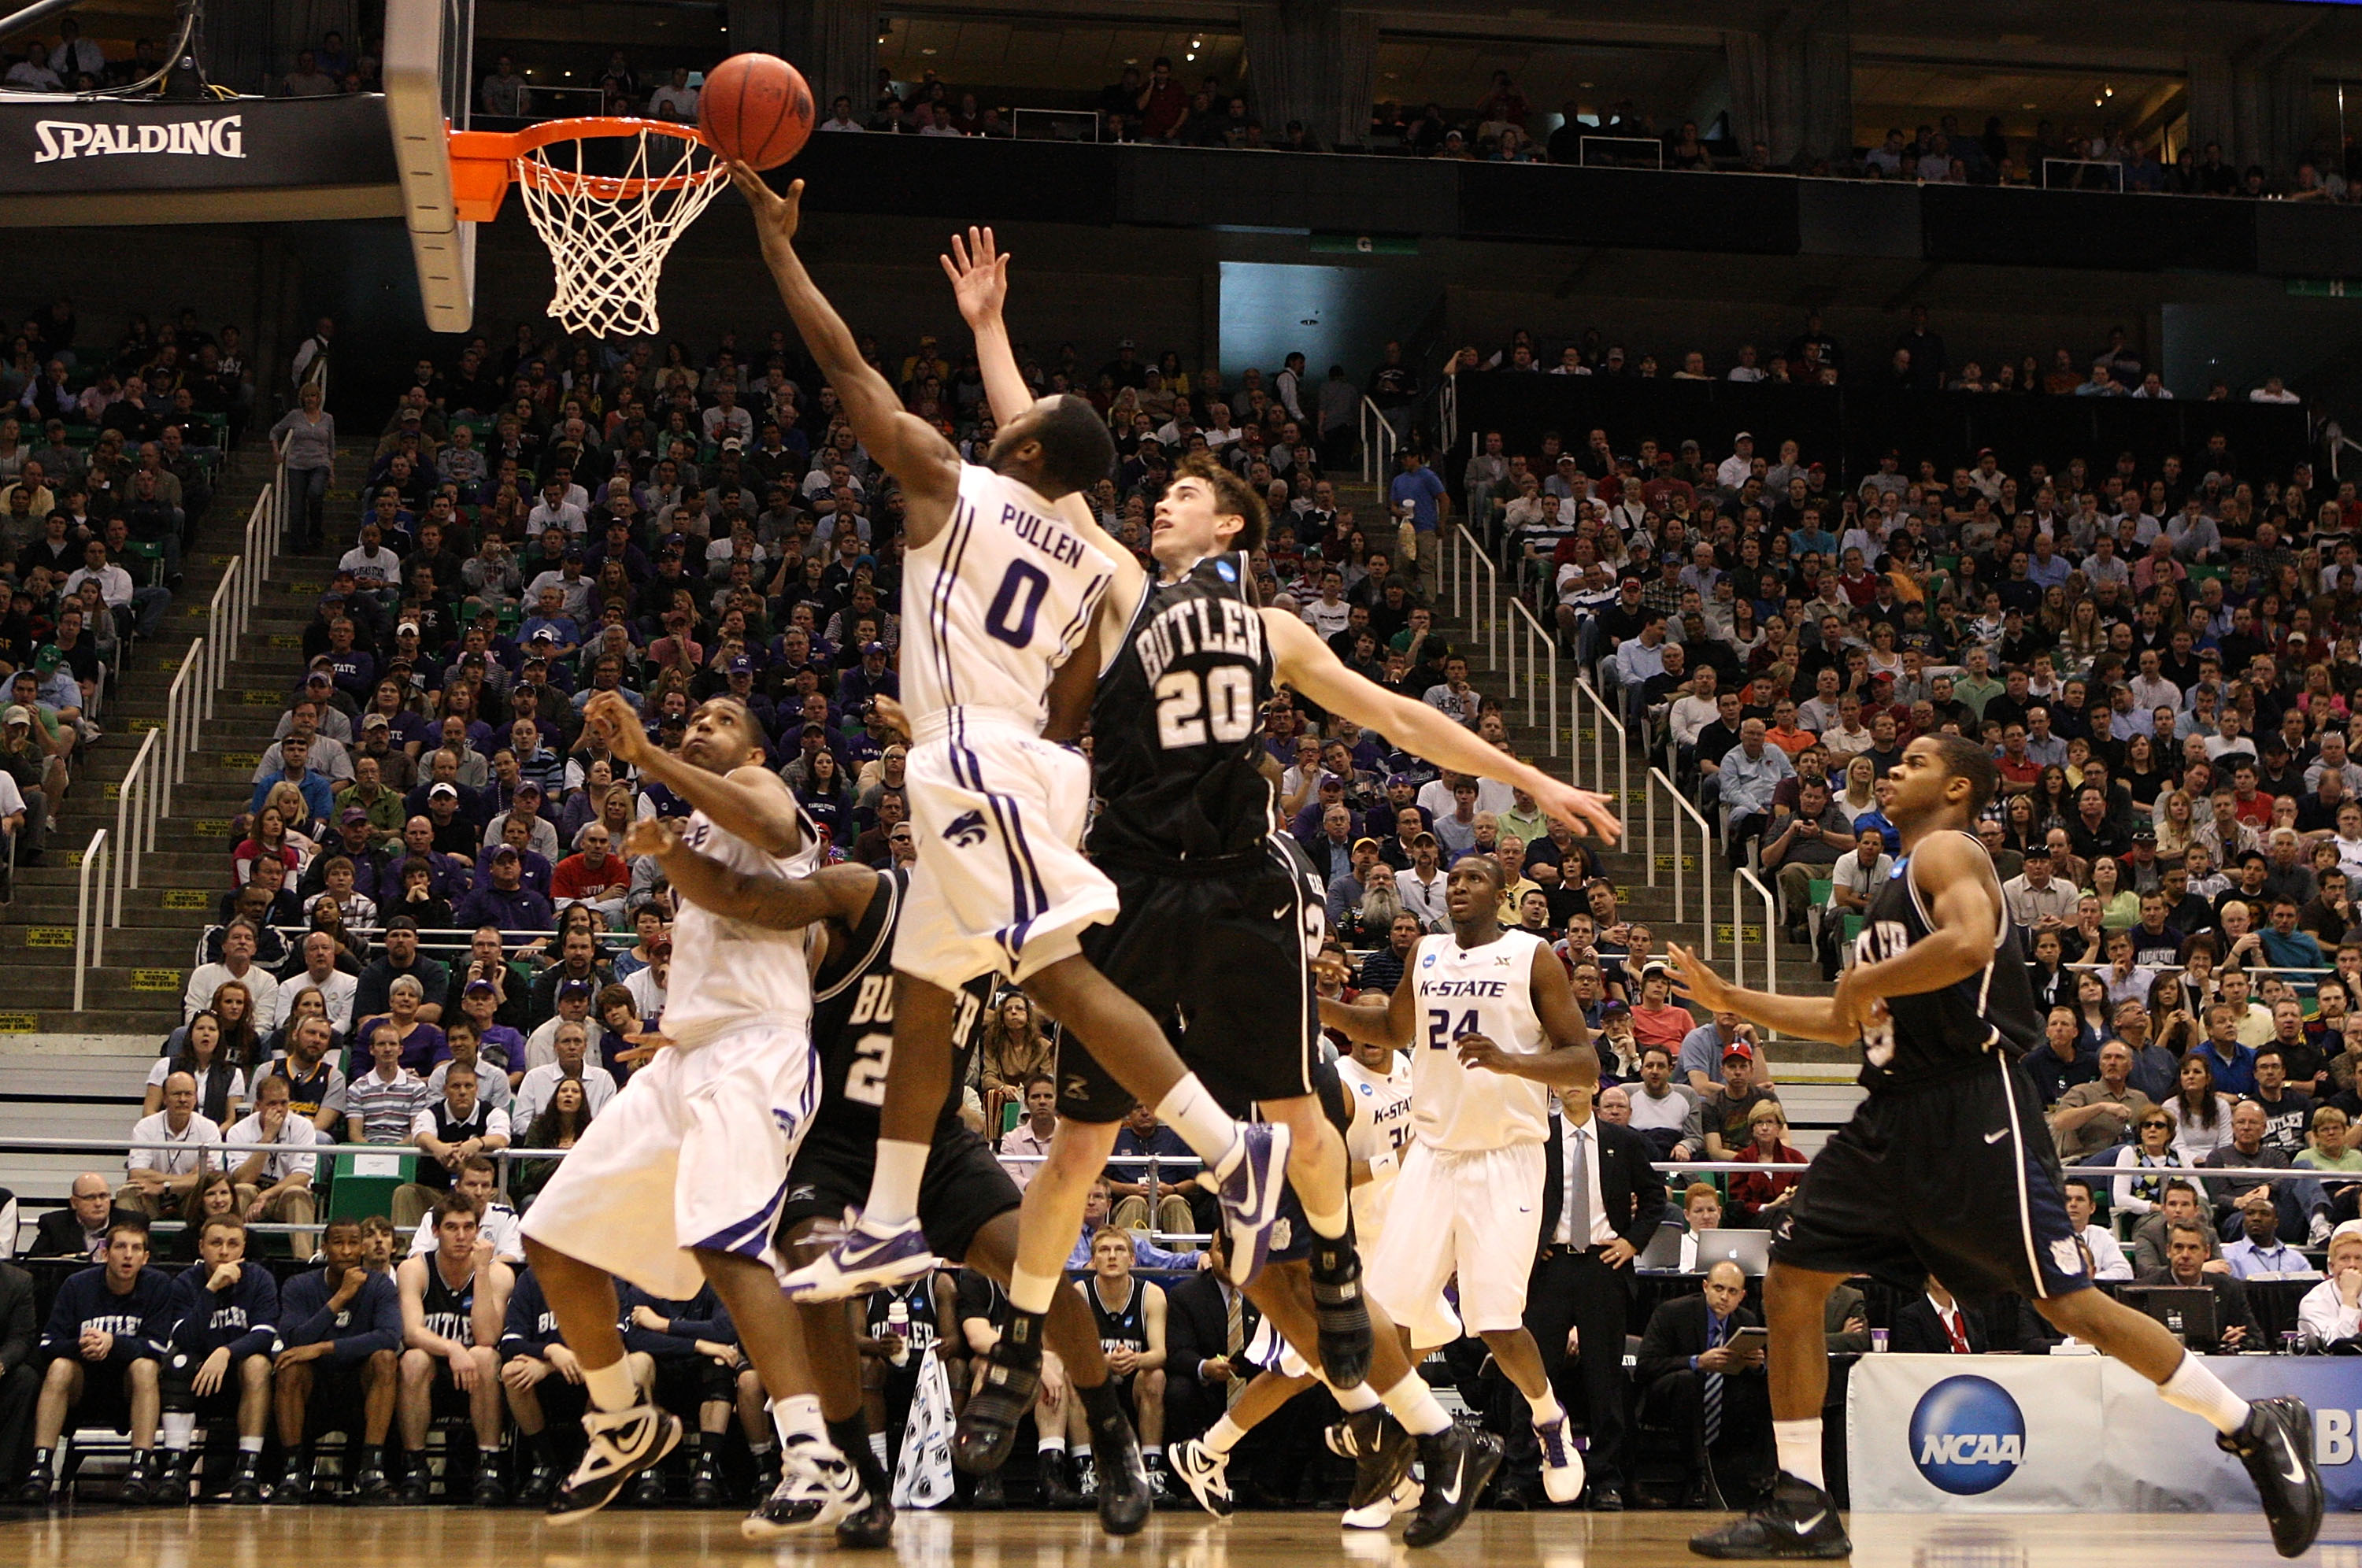 SALT LAKE CITY - MARCH 27:  Gordon Hayward #20 of the Butler Bulldogs defends against Jacob Pullen #0 of the Kansas State Wildcats during the west regional final of the 2010 NCAA men's basketball tournament at the Energy Solutions Arena on March 27, 2010